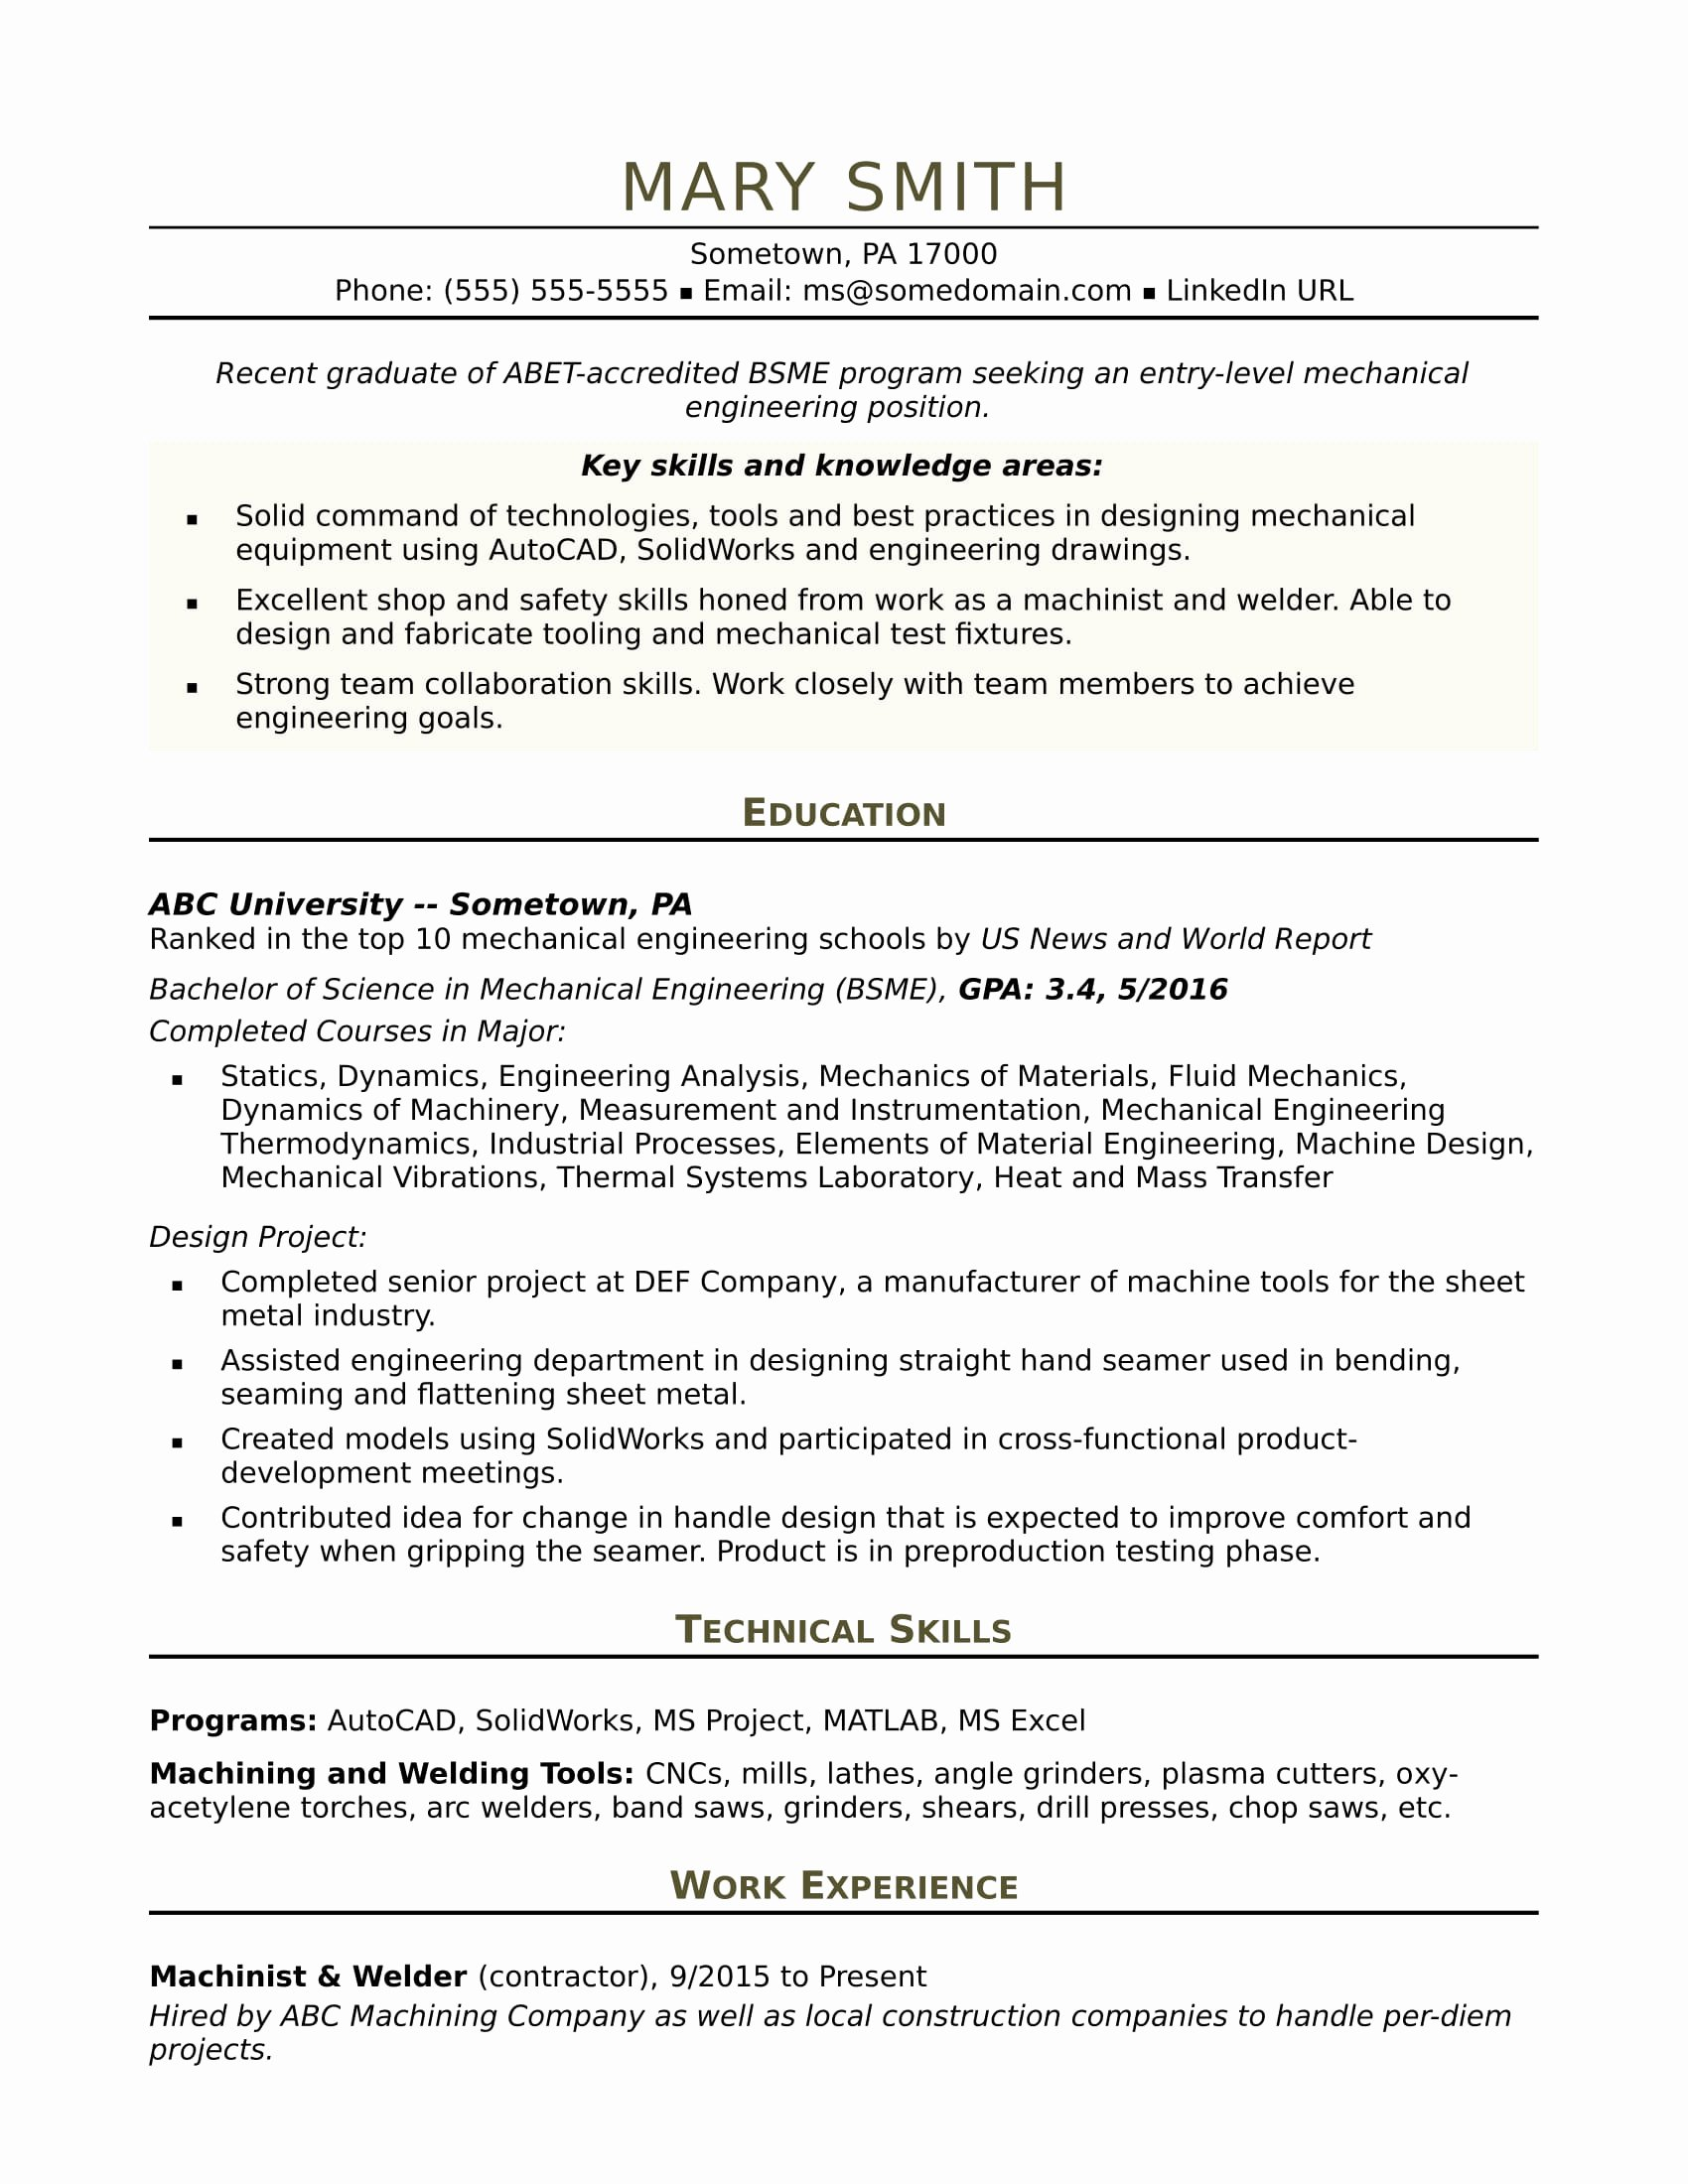 Mechanical Engineer Resume Template Awesome Sample Resume for An Entry Level Mechanical Engineer